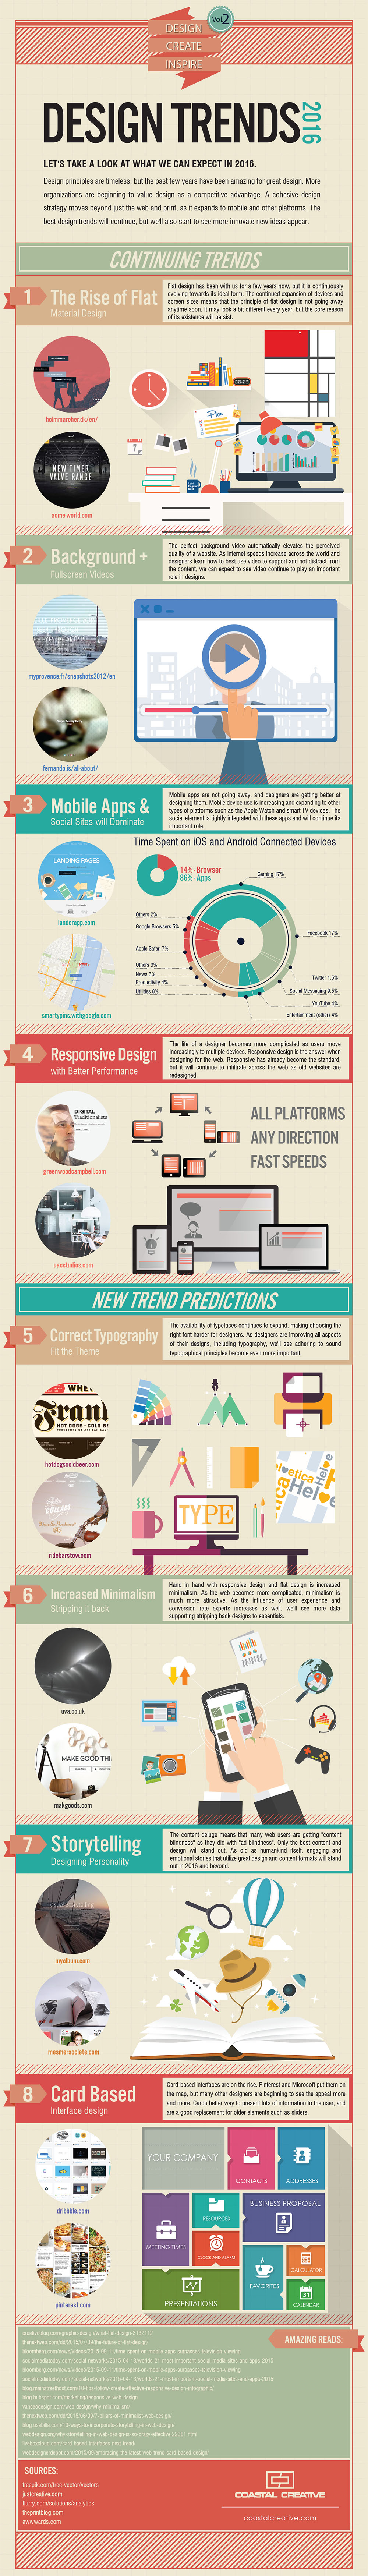 design-trends-to-watch-infographic.jpg